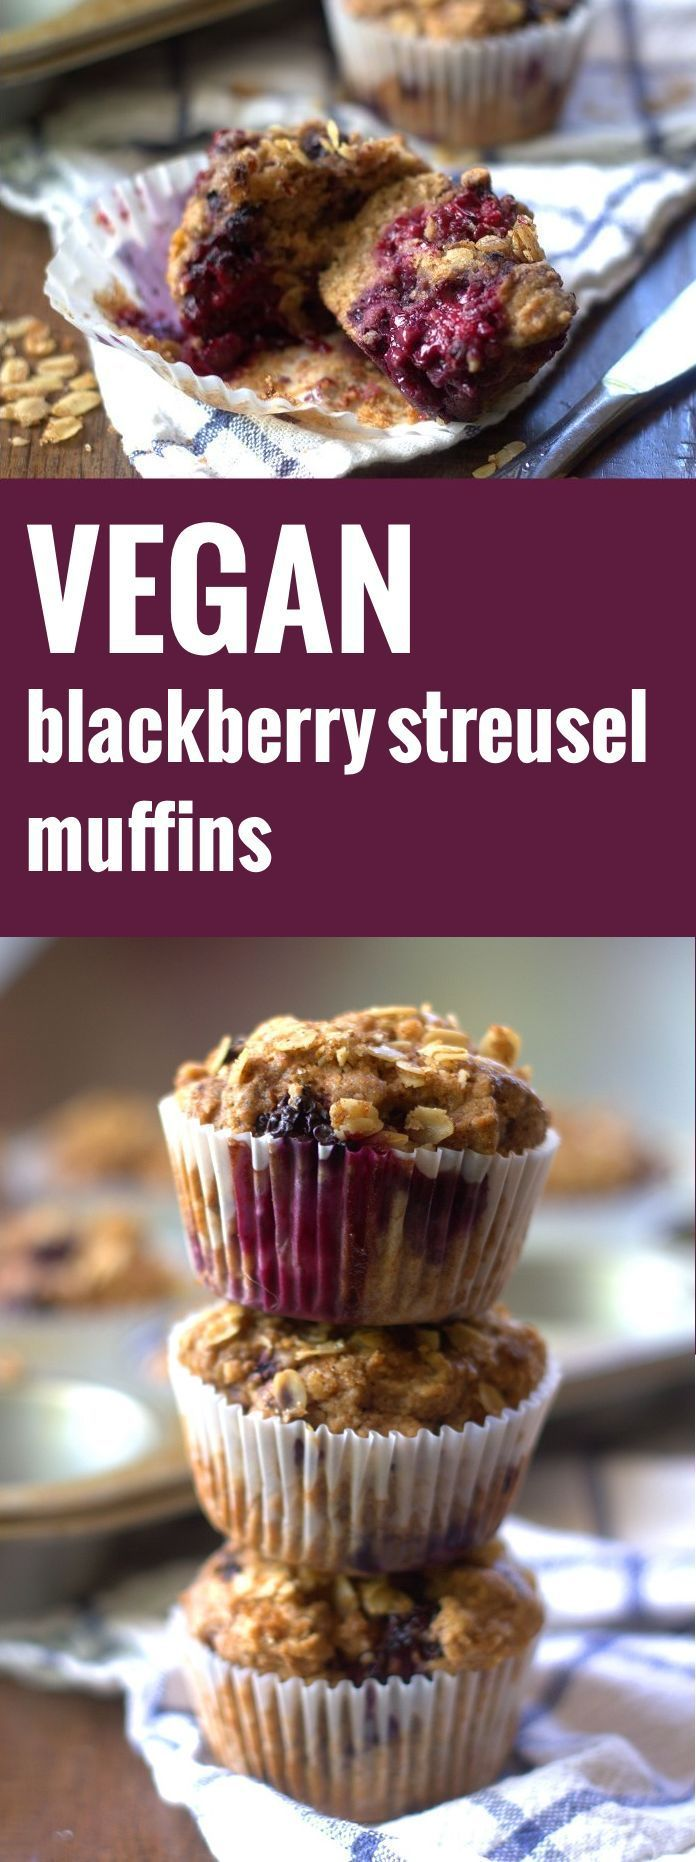 These vegan blackberry muffins are made with a lightly sweet whole wheat batter with a hint of cinnamon and sprinkled with a oat streusel topping.